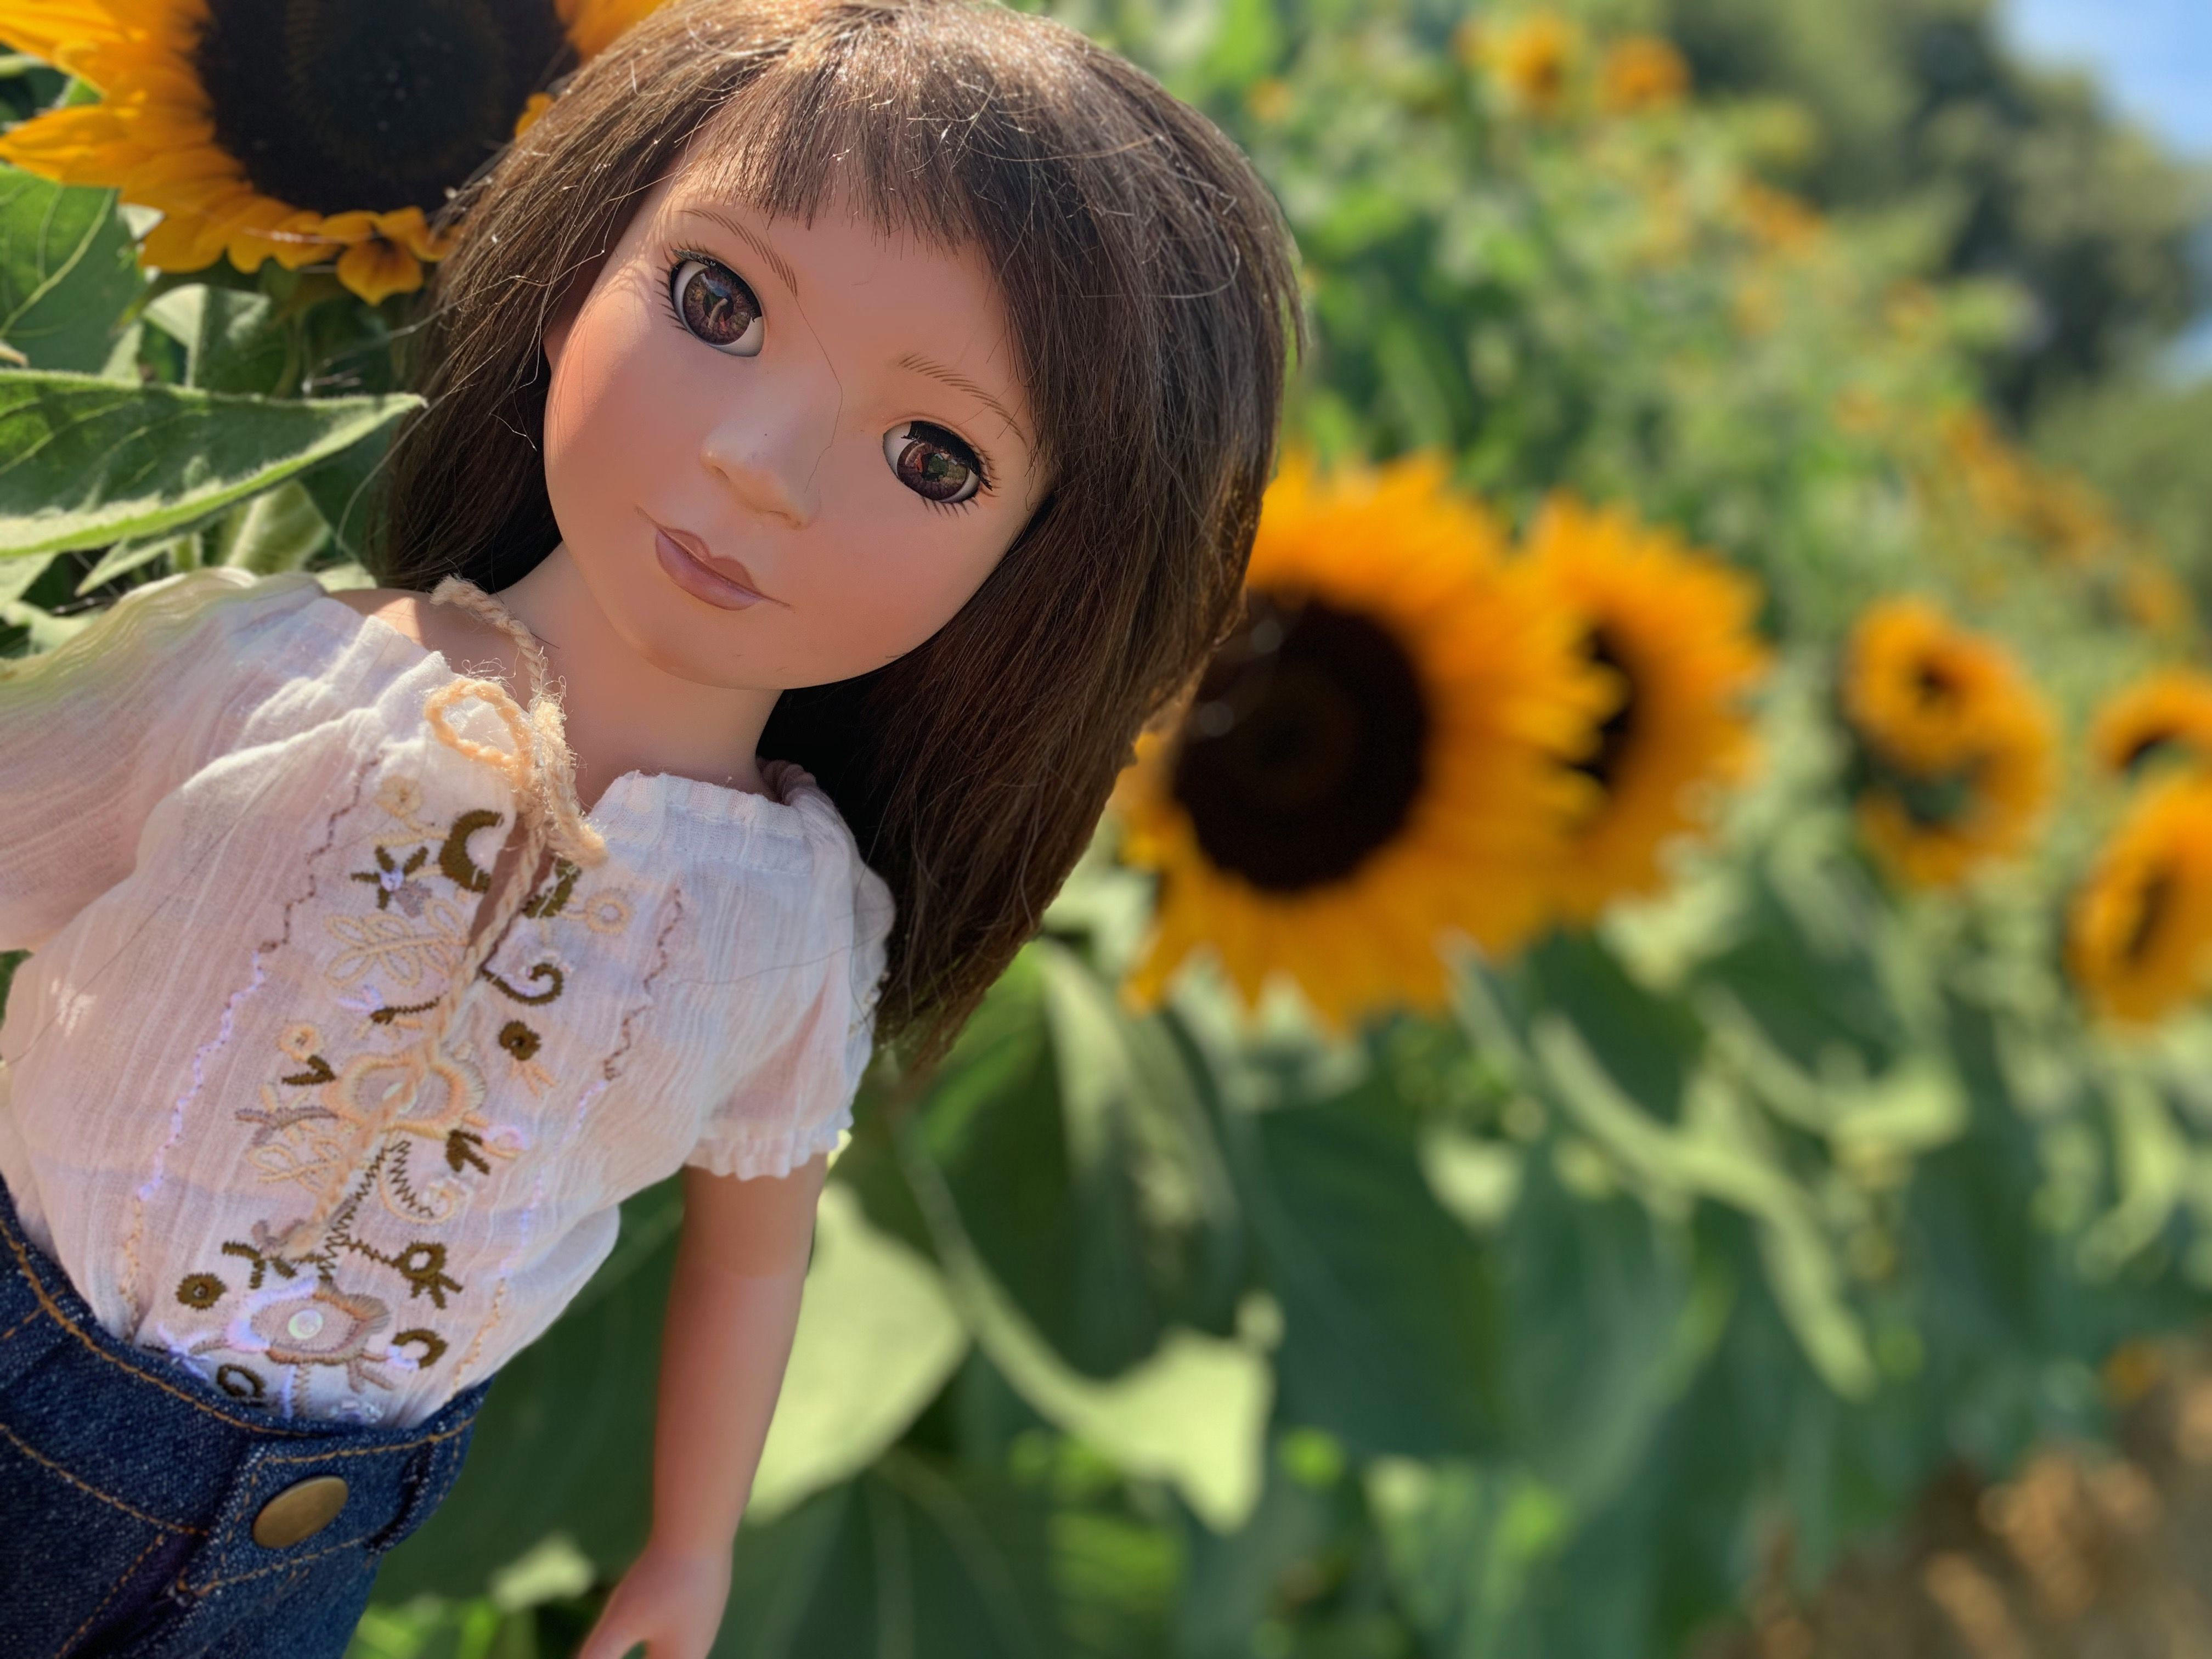 Carpatina dolls: Kohanna  #historicaldollclothes Our lovely Kohanna 18 inch slim doll, in the sunflower fields. Dolls include: historical dolls fantastic dolls doll clothes #dollclothes #dolls #dollcollector  #18inchdolls #americangirl #historicaldollclothes Carpatina dolls: Kohanna  #historicaldollclothes Our lovely Kohanna 18 inch slim doll, in the sunflower fields. Dolls include: historical dolls fantastic dolls doll clothes #dollclothes #dolls #dollcollector  #18inchdolls #americangirl #hist #historicaldollclothes